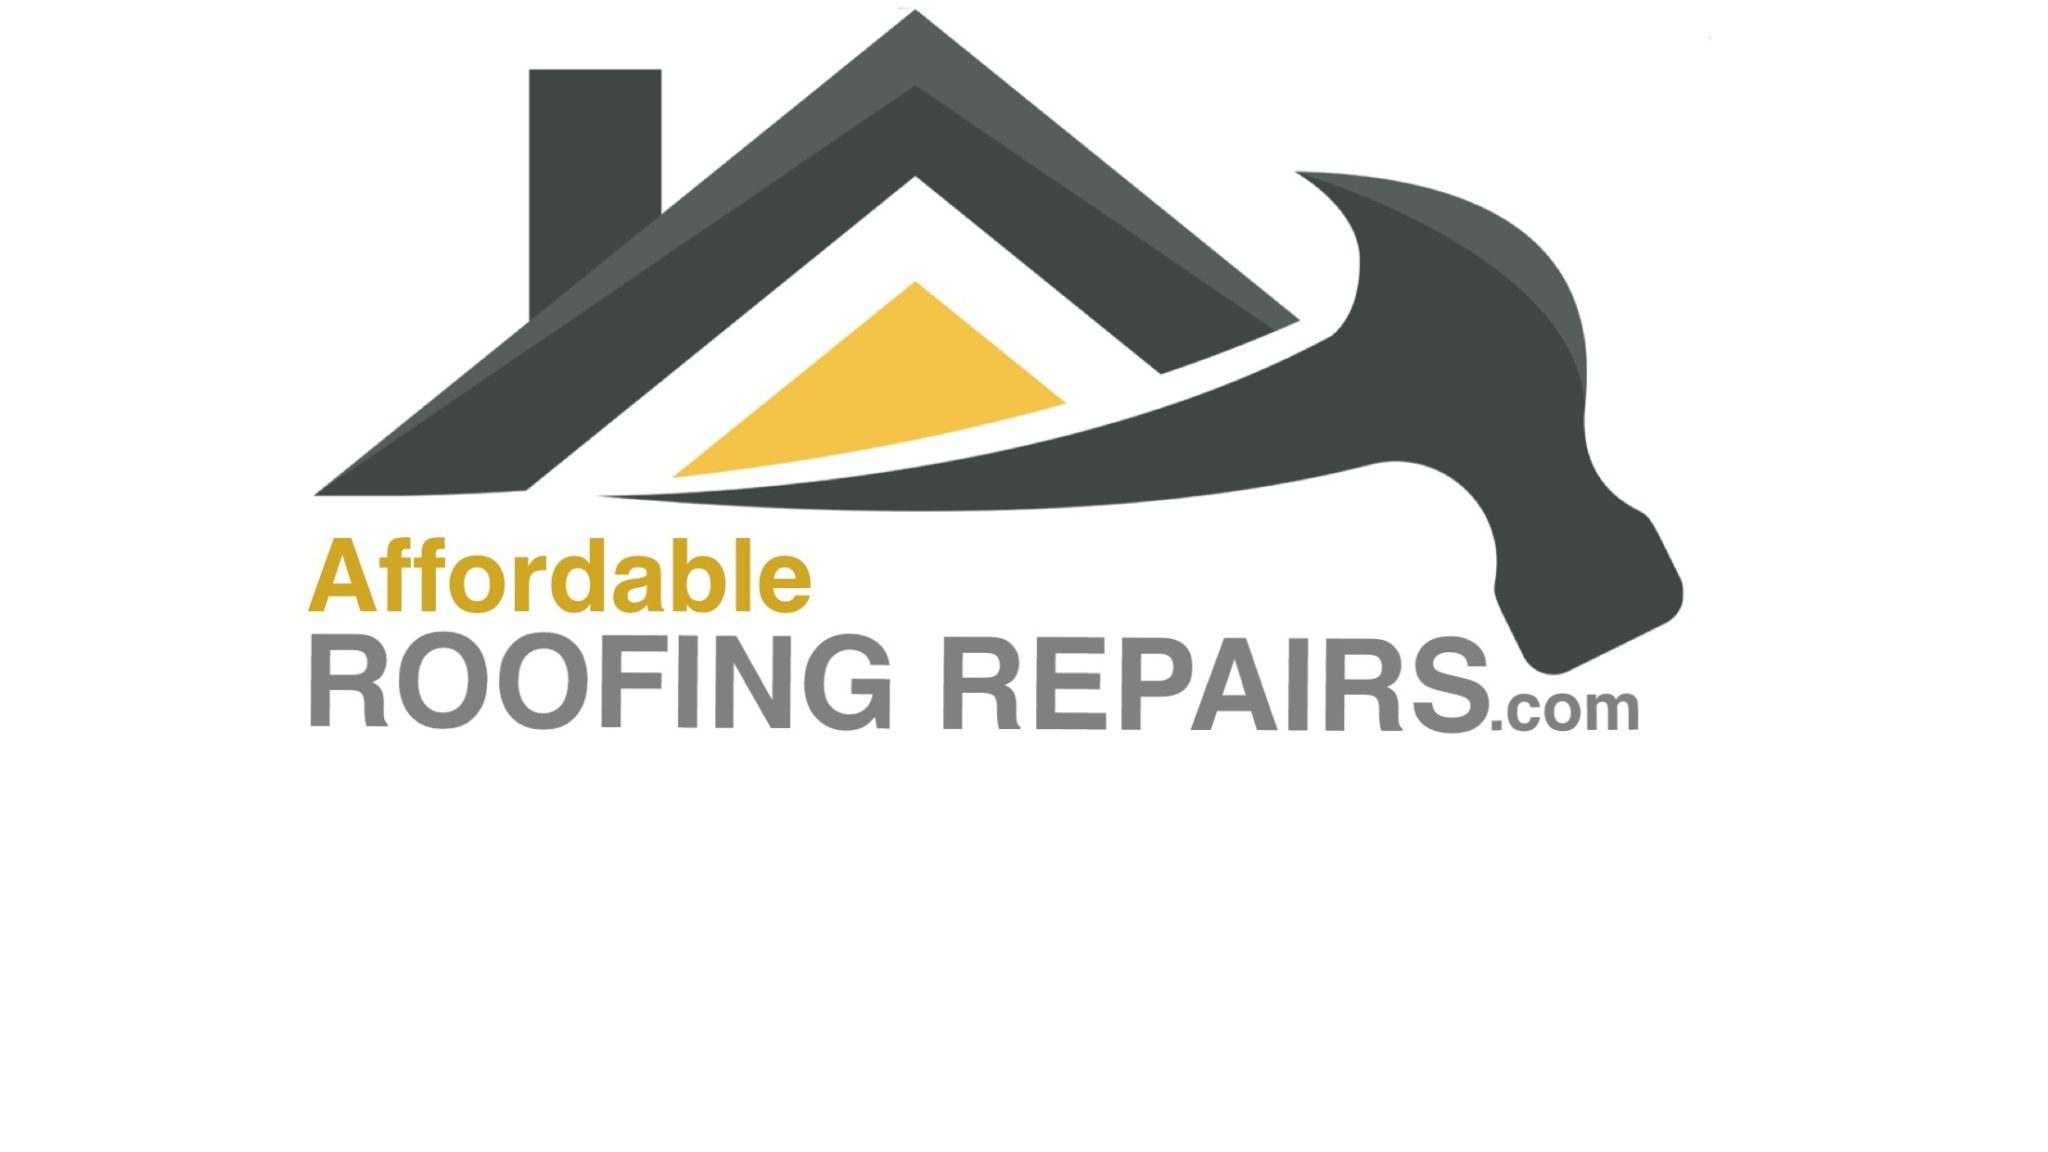 Affordable Roofing Repairs, affordable raccoon damage repair, Affordable Wildlife Control